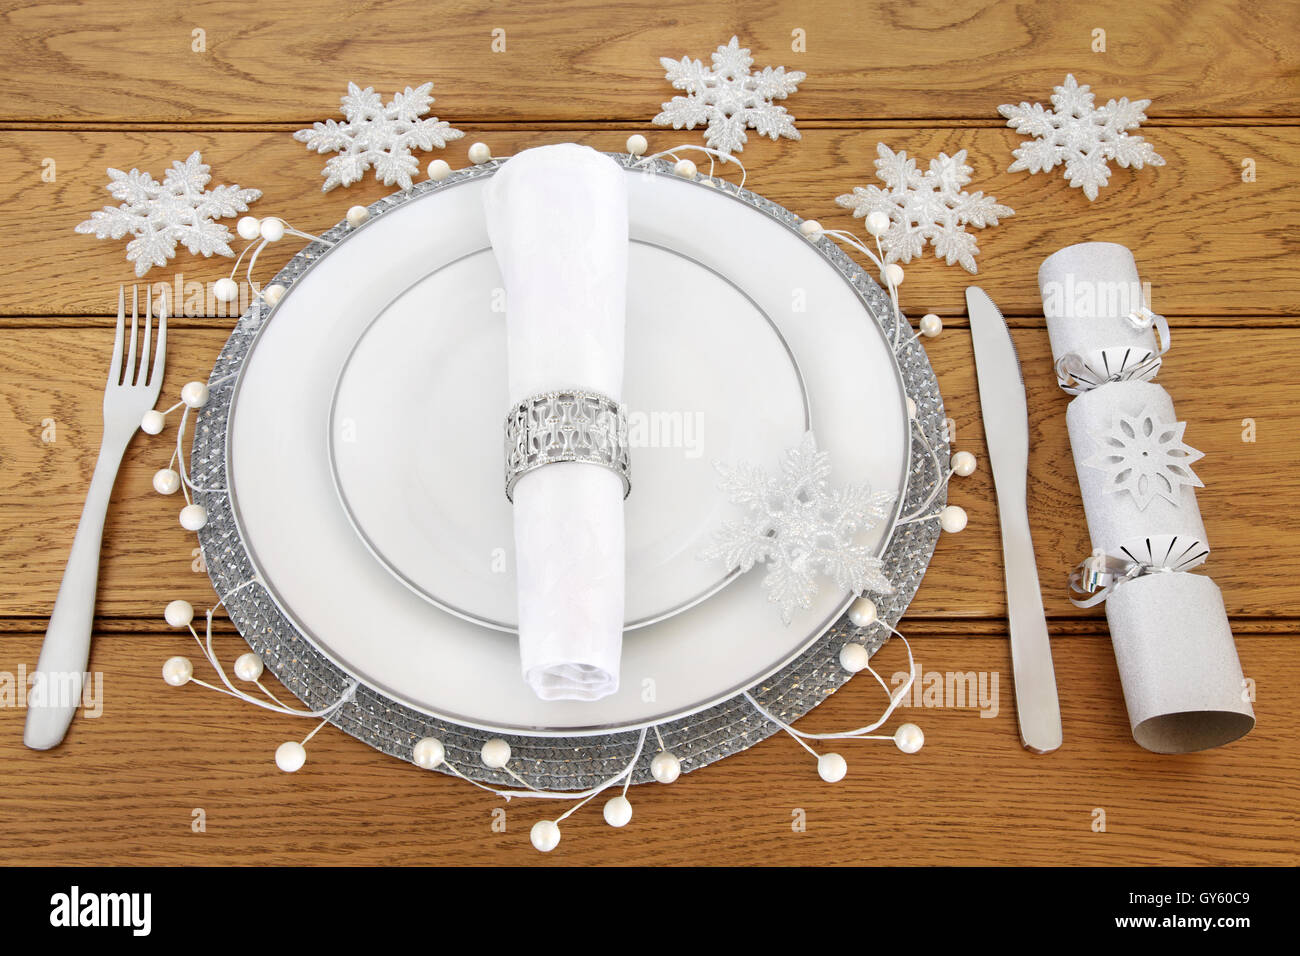 Christmas dinner table setting with white porcelain plates cutlery serviette with silver napkin ring u0026 snowflake baubles. & Christmas dinner table setting with white porcelain plates cutlery ...